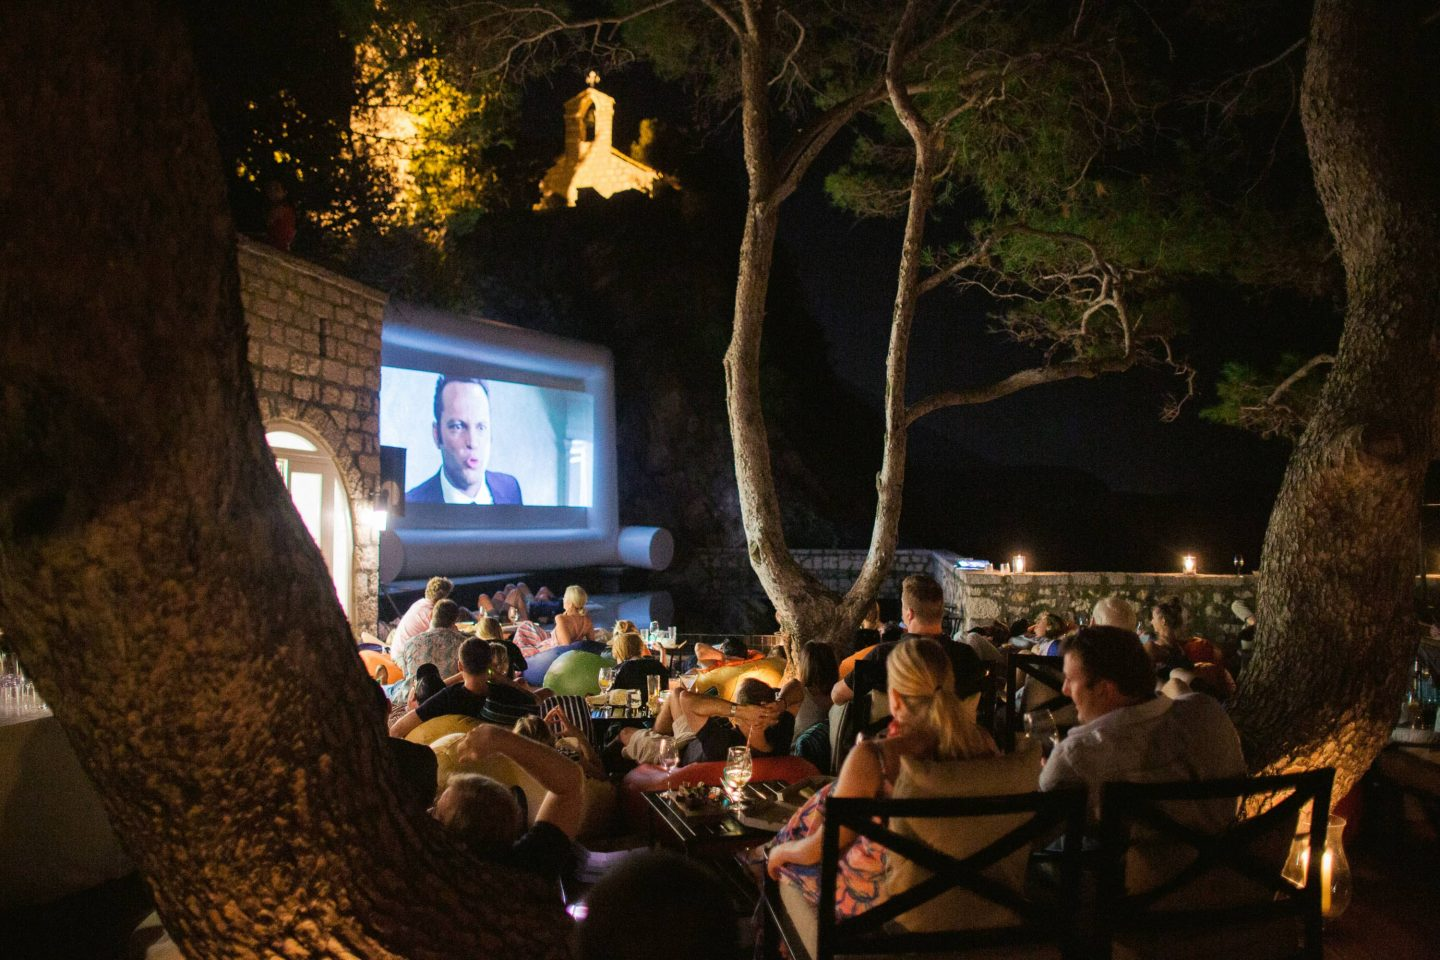 Movie night at this Aman Sveti Stefan Montenegro destination wedding weekend | Photo by Allan Zepeda